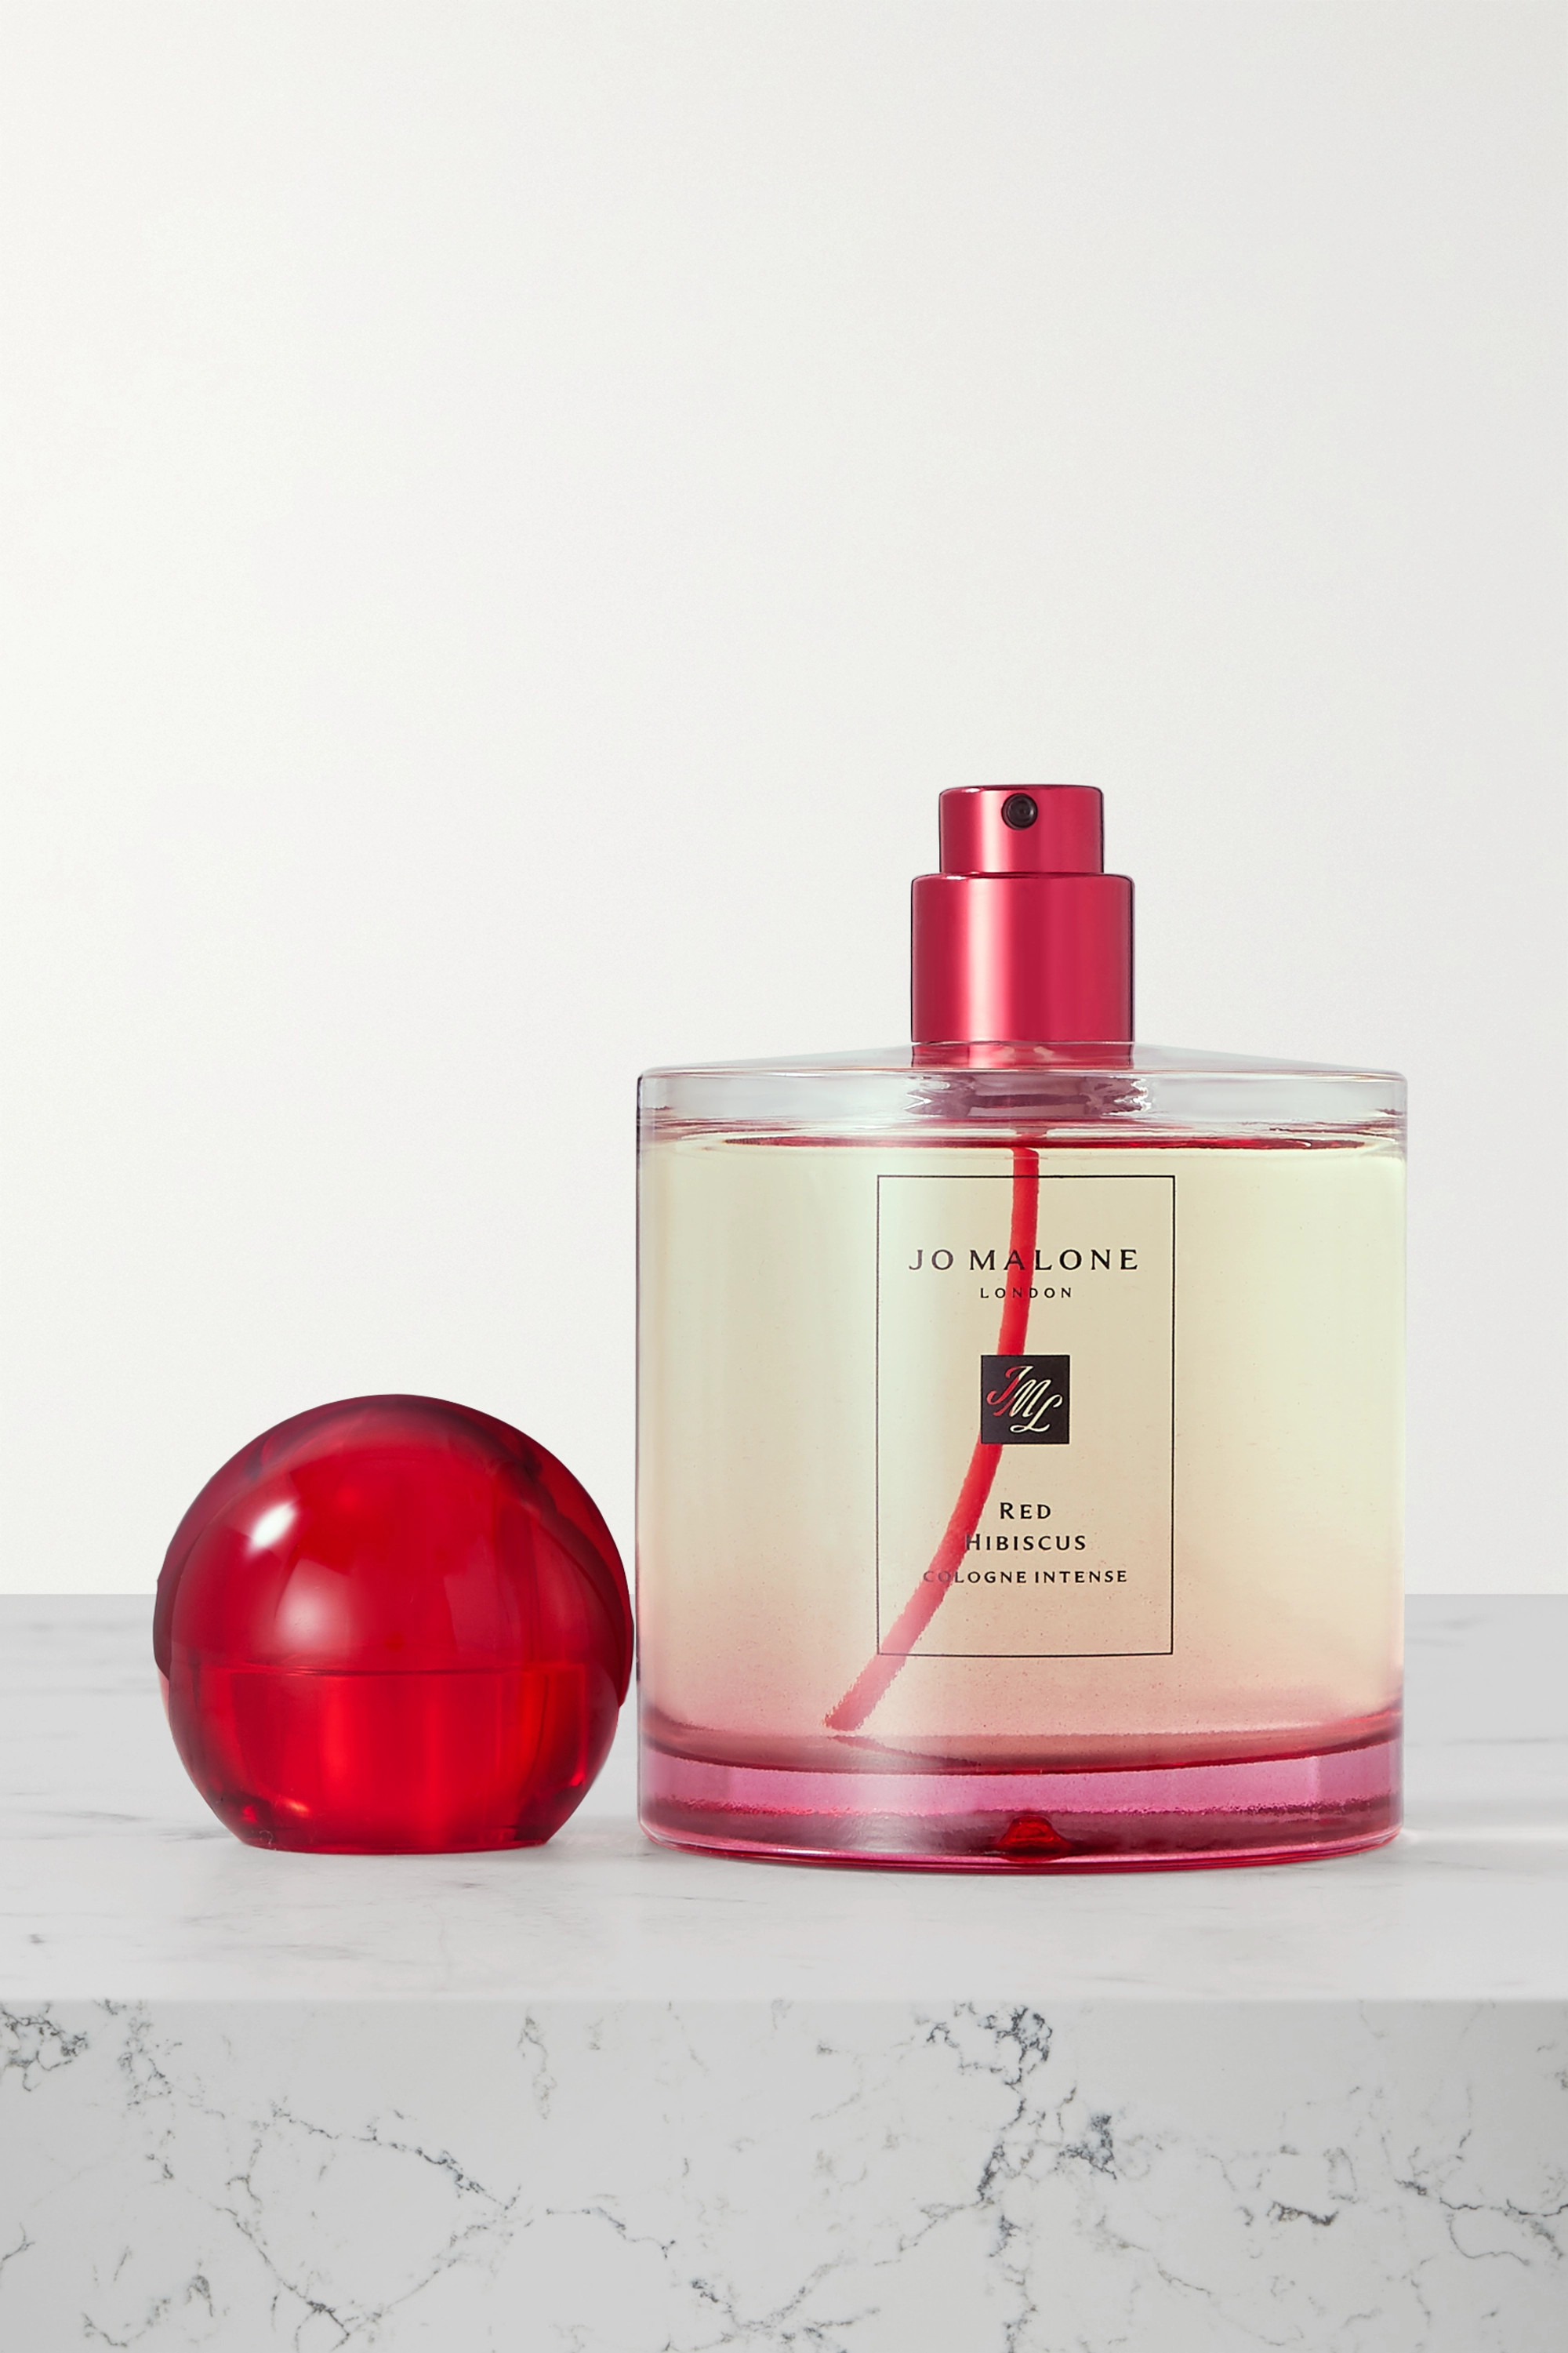 Jo Malone London Cologne Intense - Red Hibiscus, 100ml